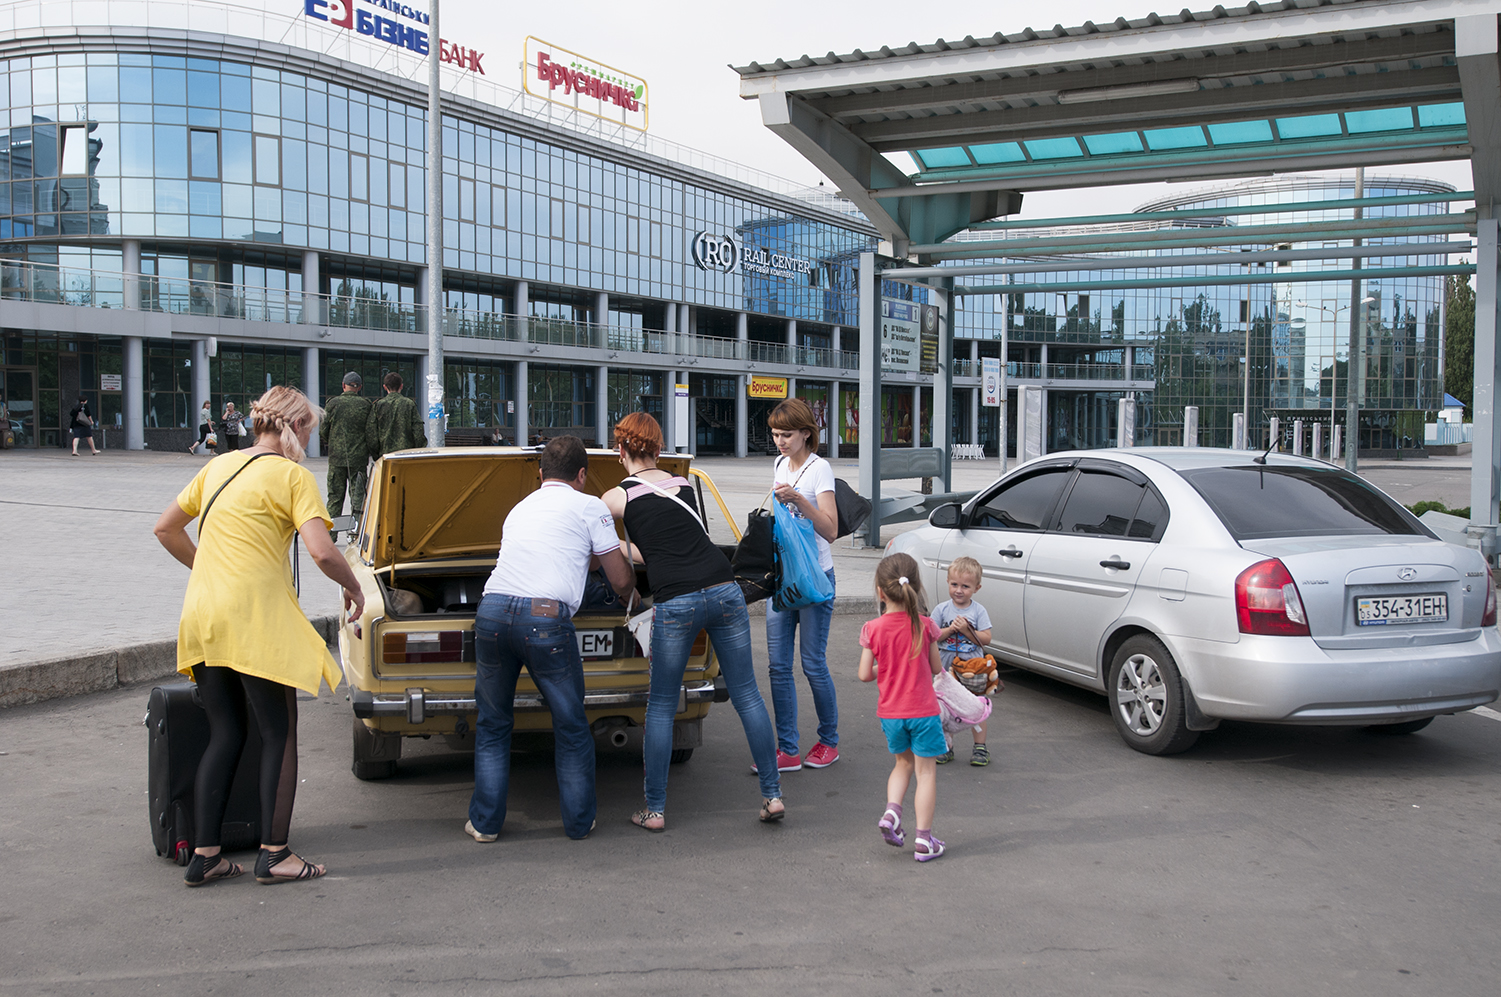 A family rushing to put their suitcases in the trunk of the car before leaving the train station